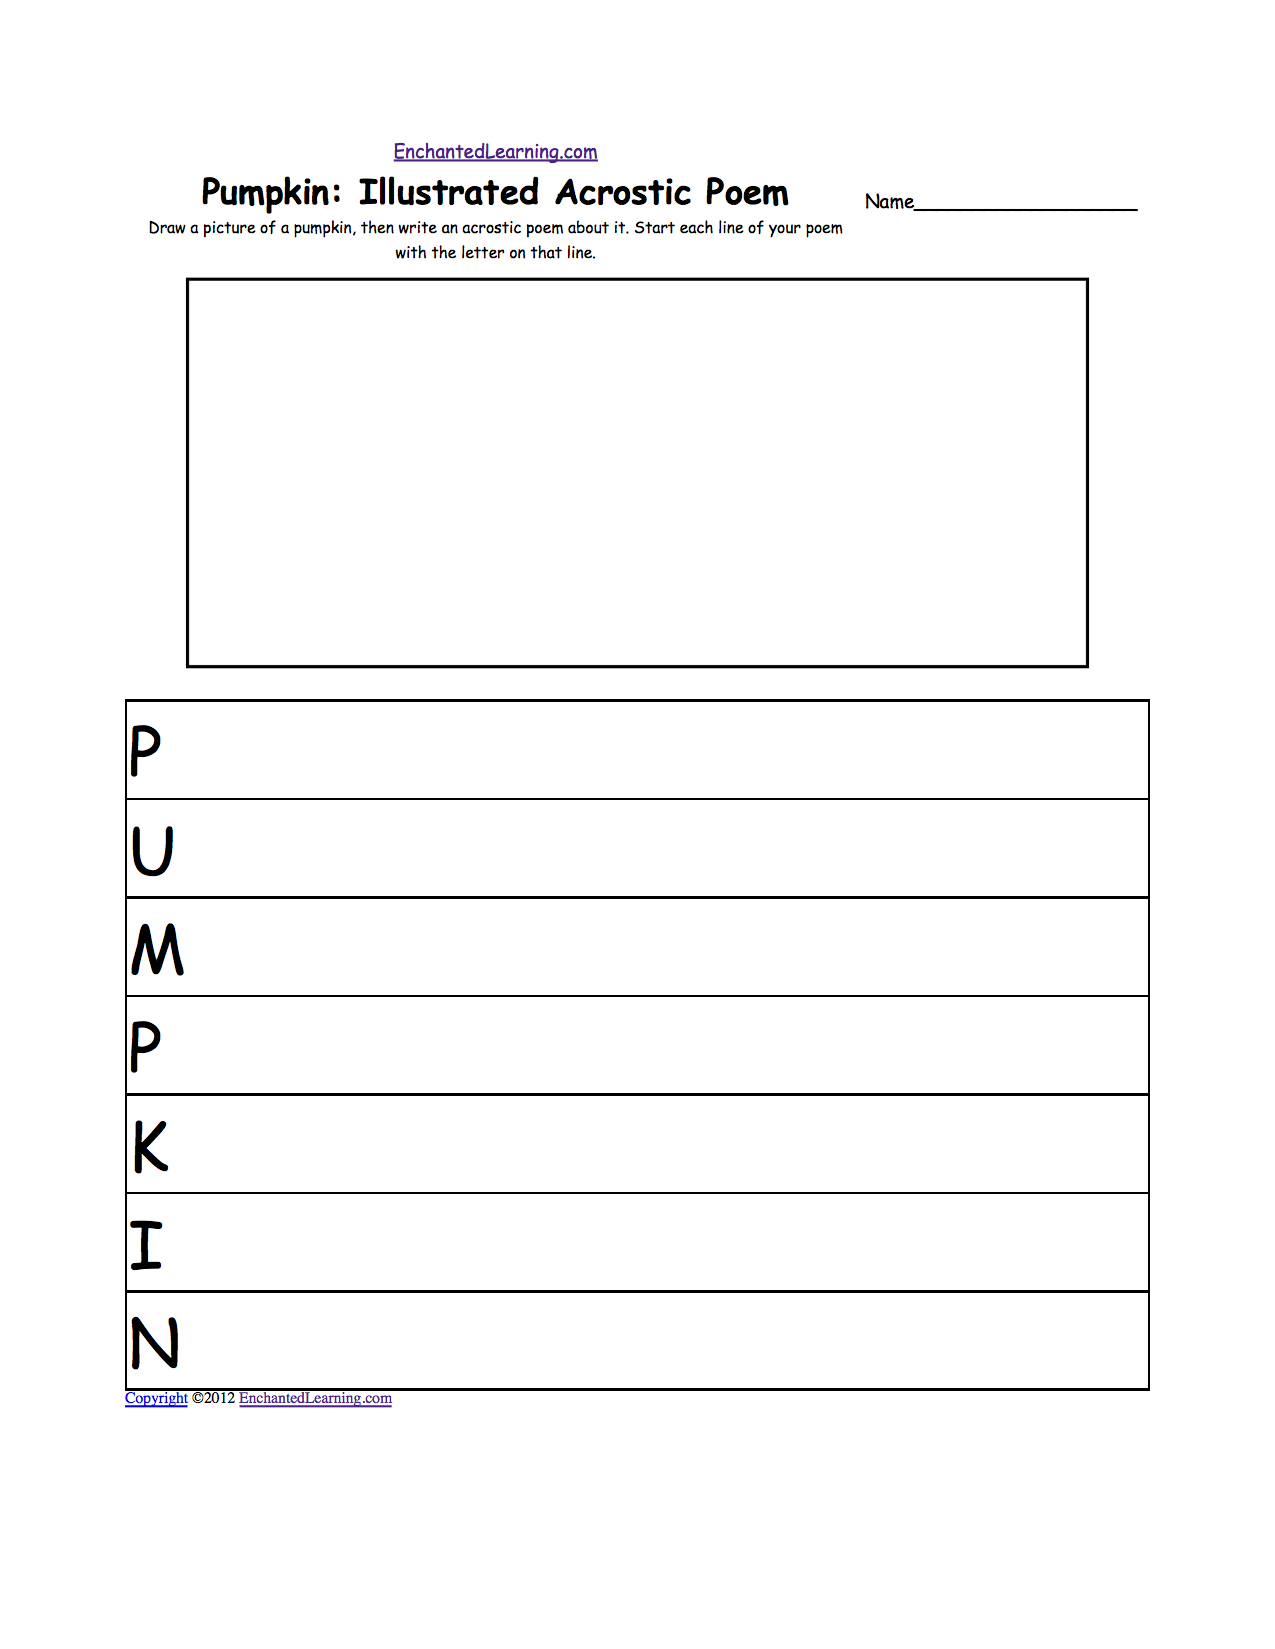 worksheet Life Cycle Of A Pumpkin Worksheet pumpkins at enchantedlearning com